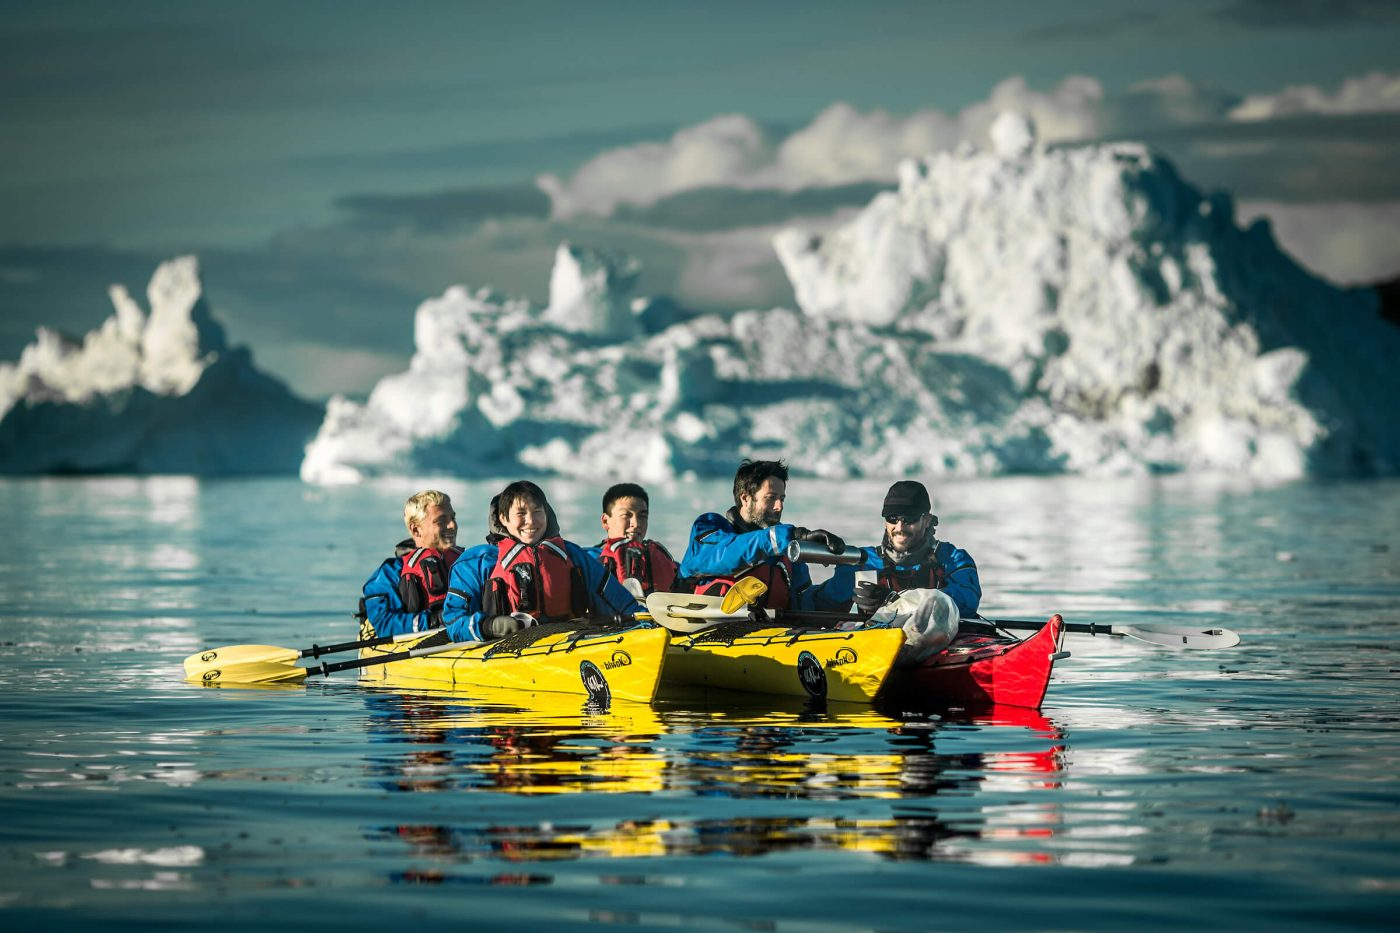 Pouring coffee on a kayaking trip among icebergs in the Disko Bay in Greenland. By Mads Pihl